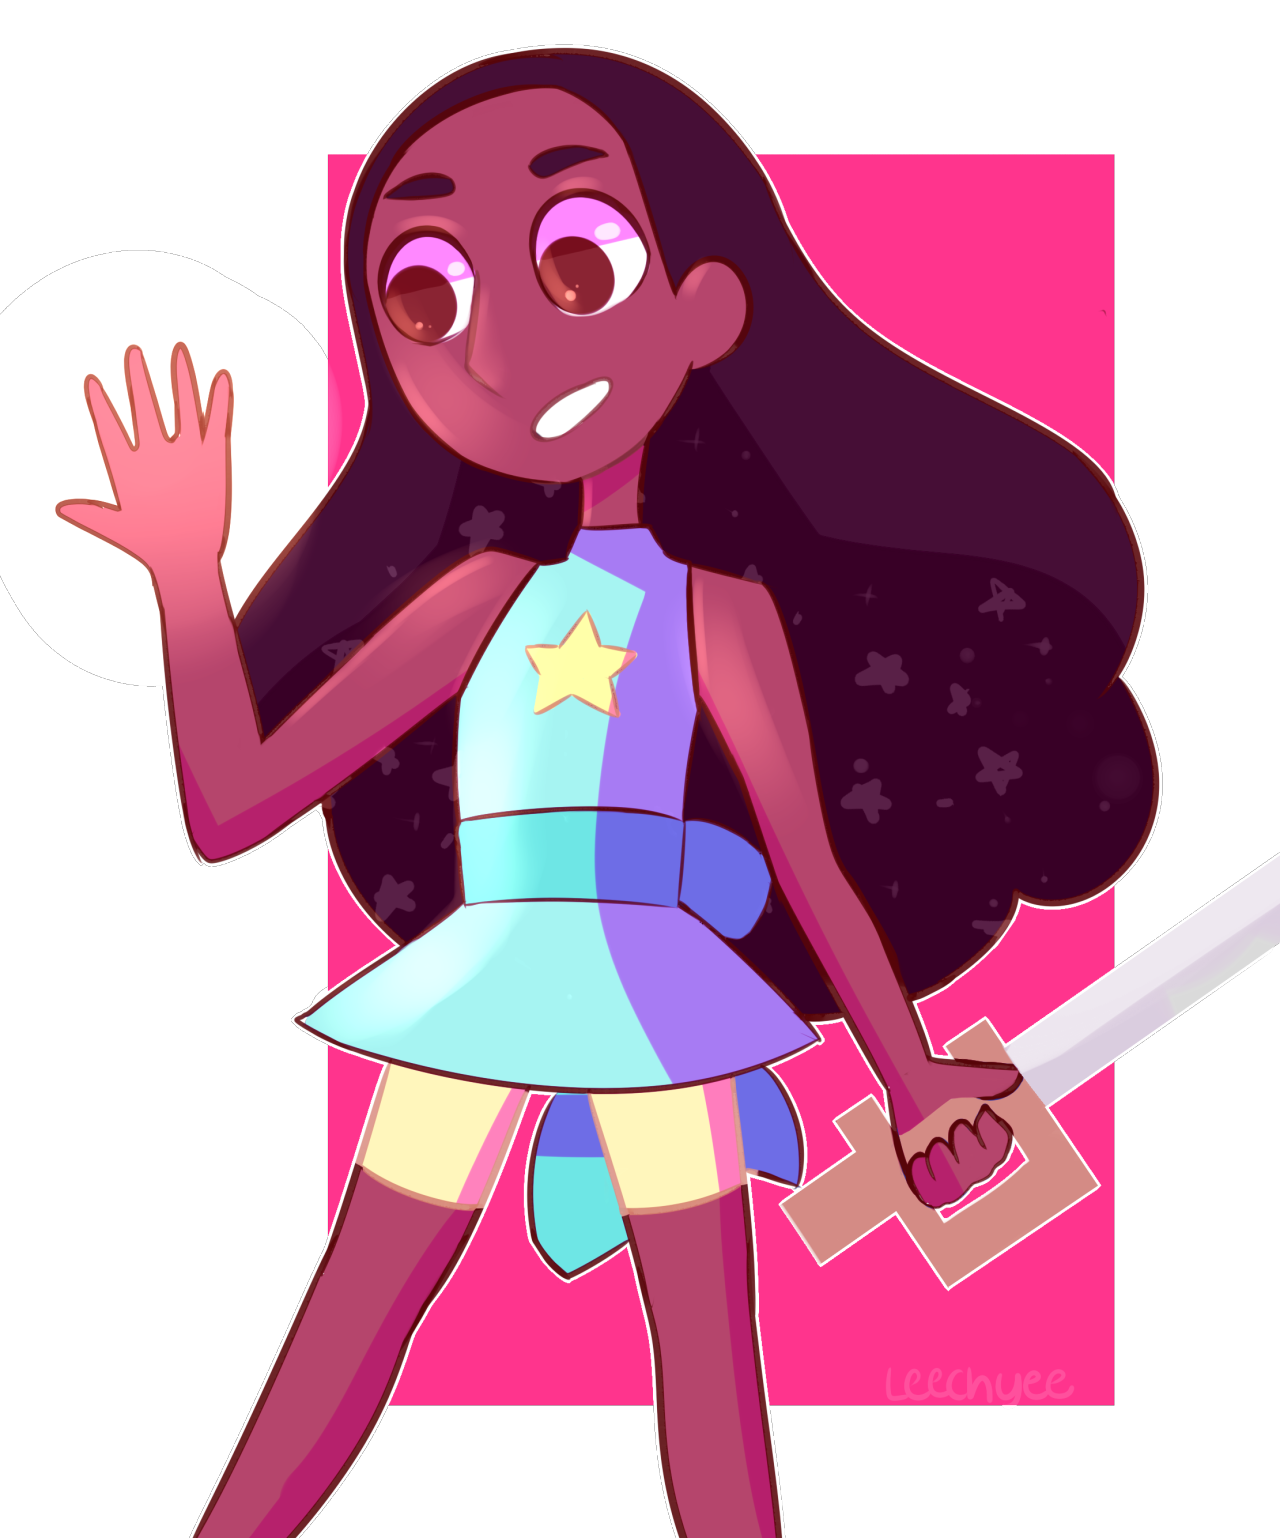 wouldnt connie be awesome in pearls outfit? (eye strain in second cause the 3D effects are fun)